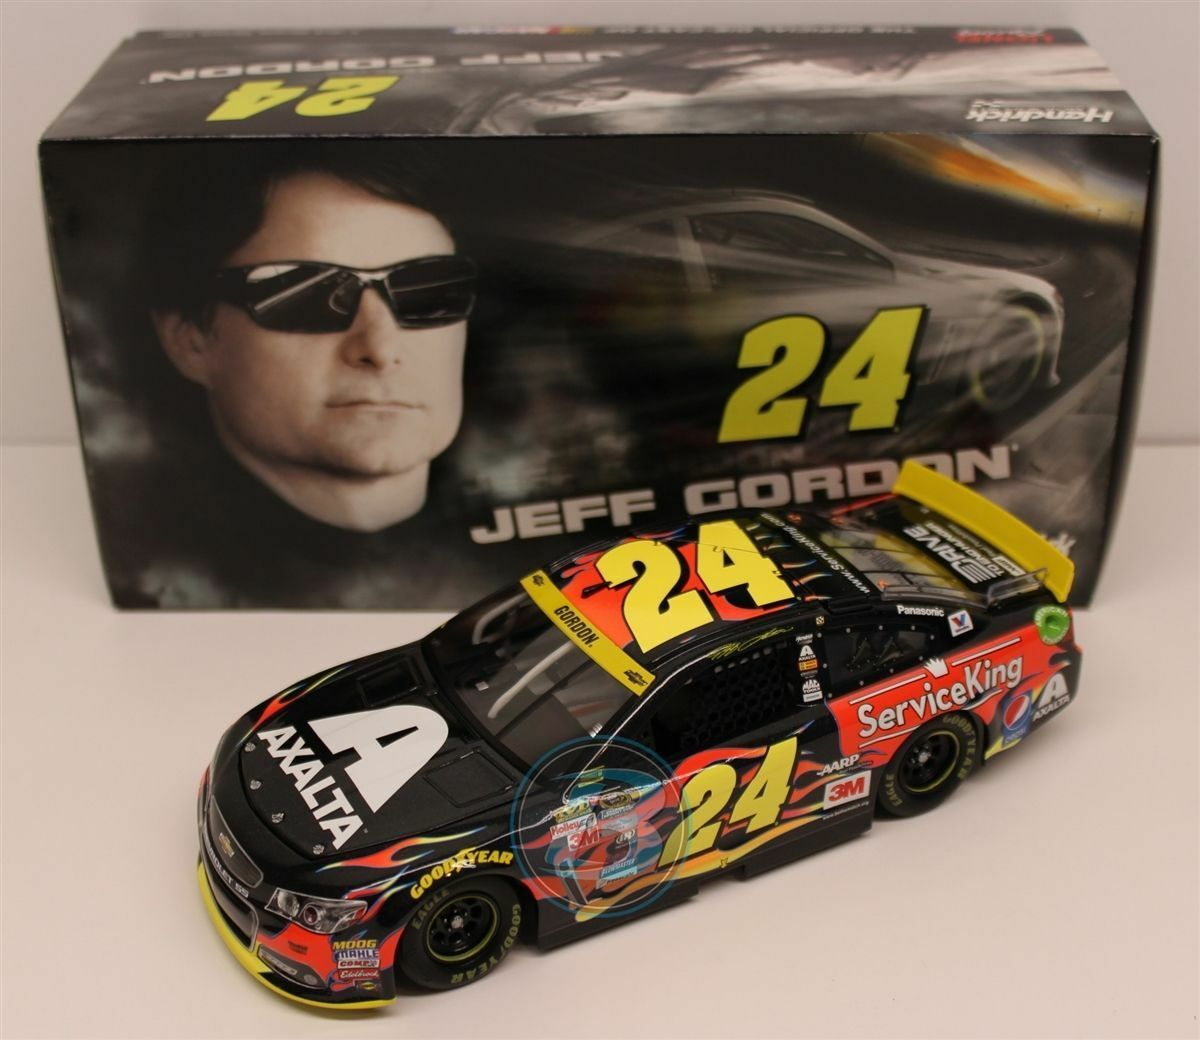 NASCAR JEFF GORDON AXALTA SERVICE KING  1 24 CAR CAR CAR 96145a